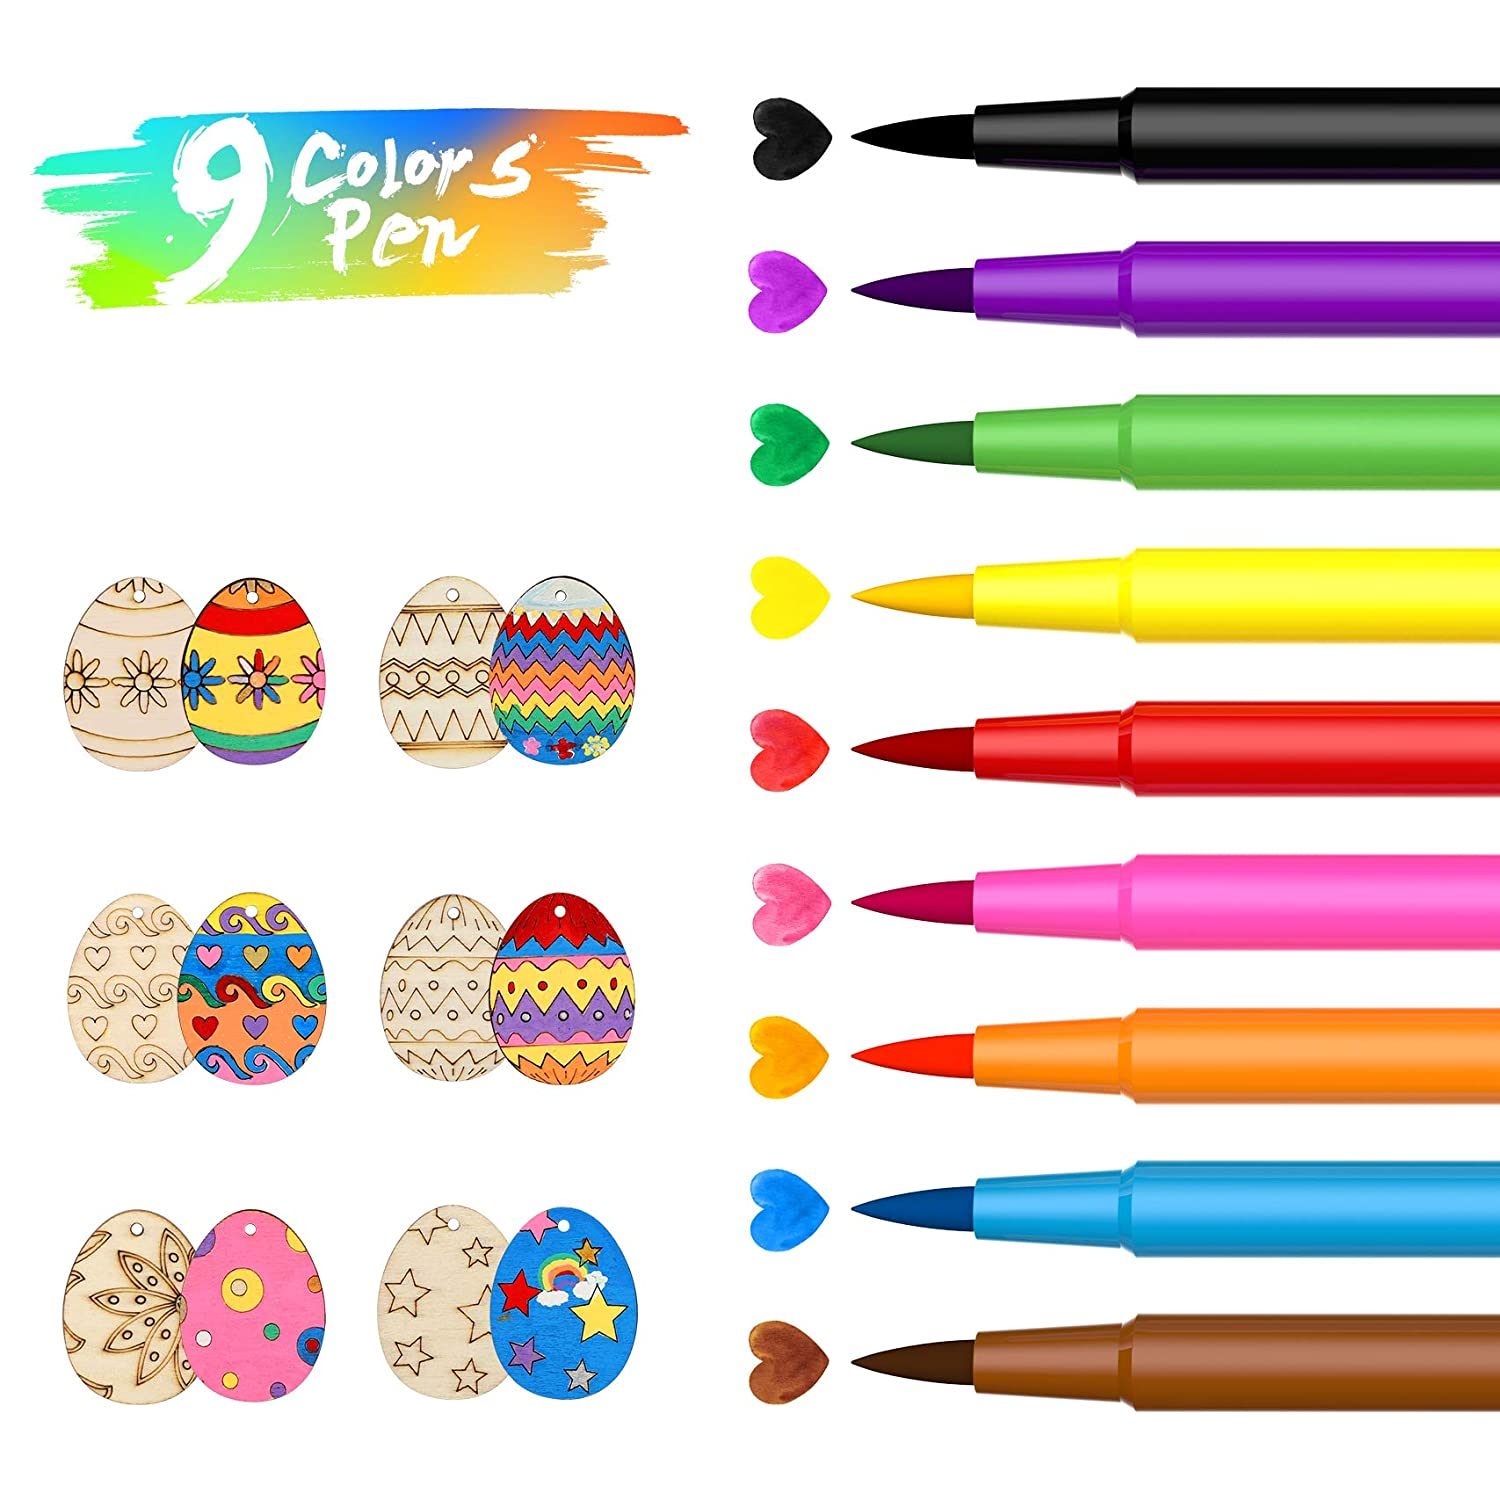 Edible Markers for Cookies Food Coloring Marker Pens 9Pcs ValueTalks Fine Tip Food Grade Food Gourmet Writers for DIY Decorating Fondant Cakes Easter Eggs Baking Painting Drawing Writing